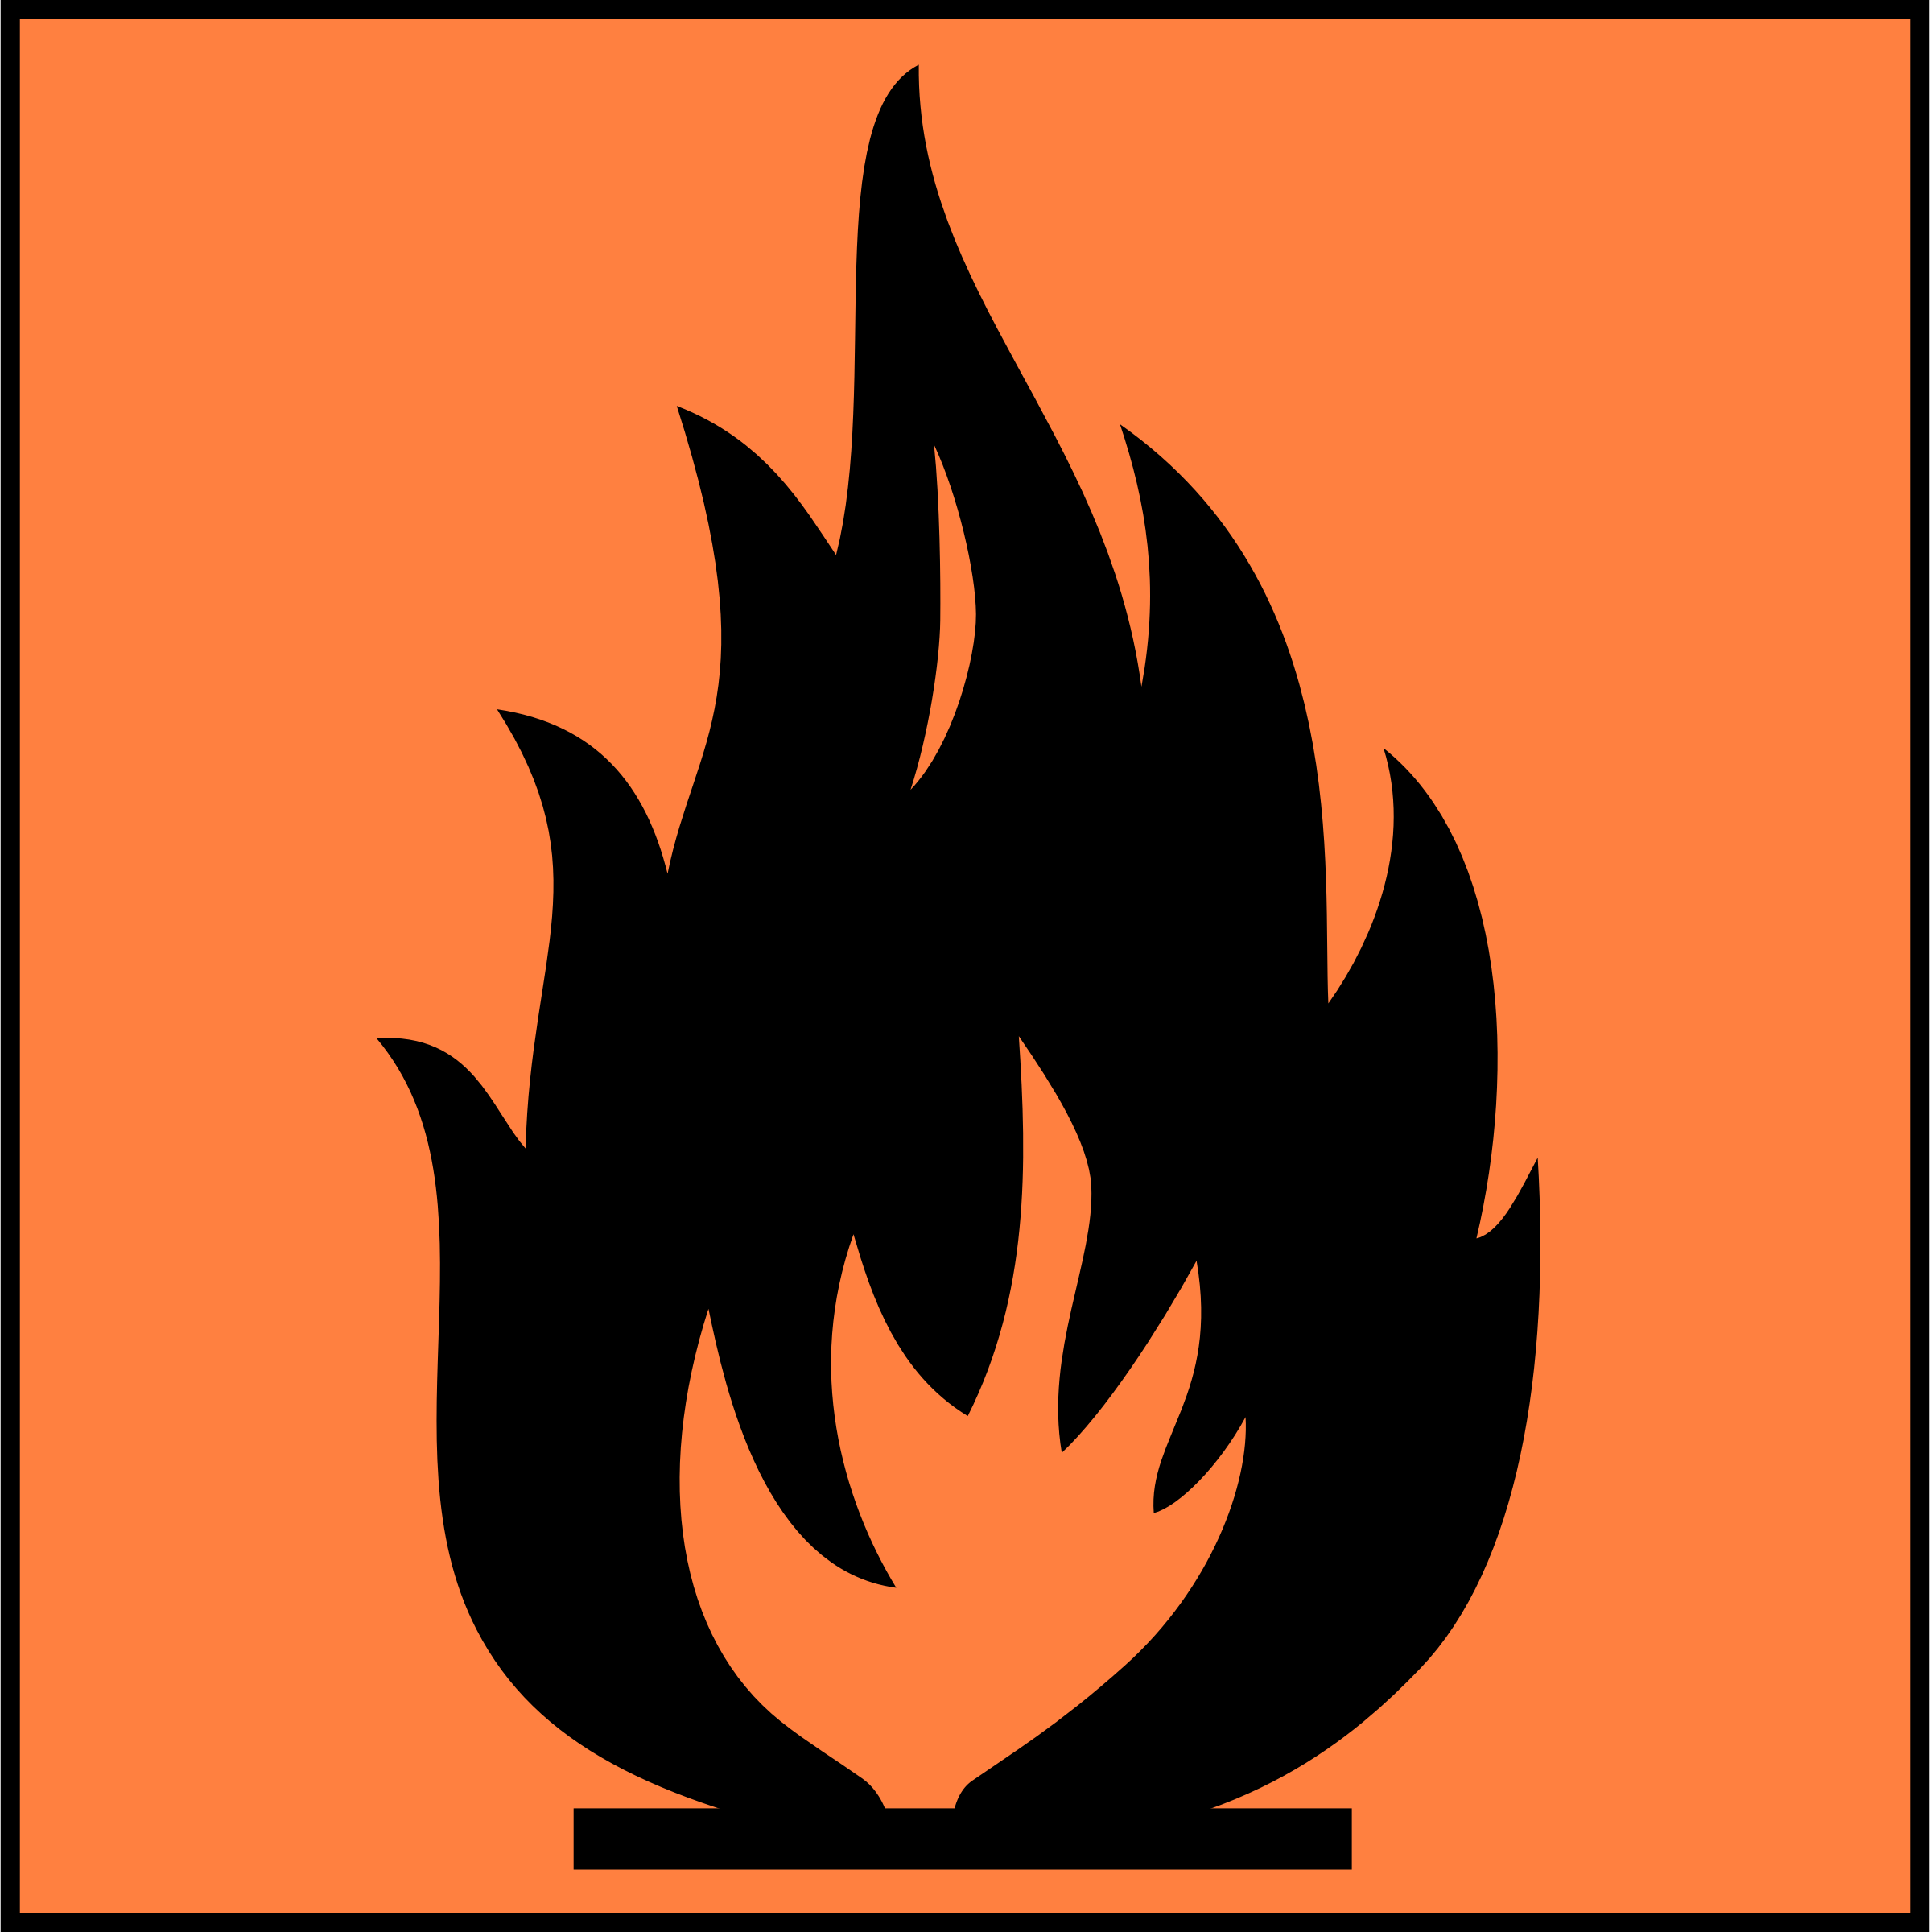 Flamable sign by Justin Ternet